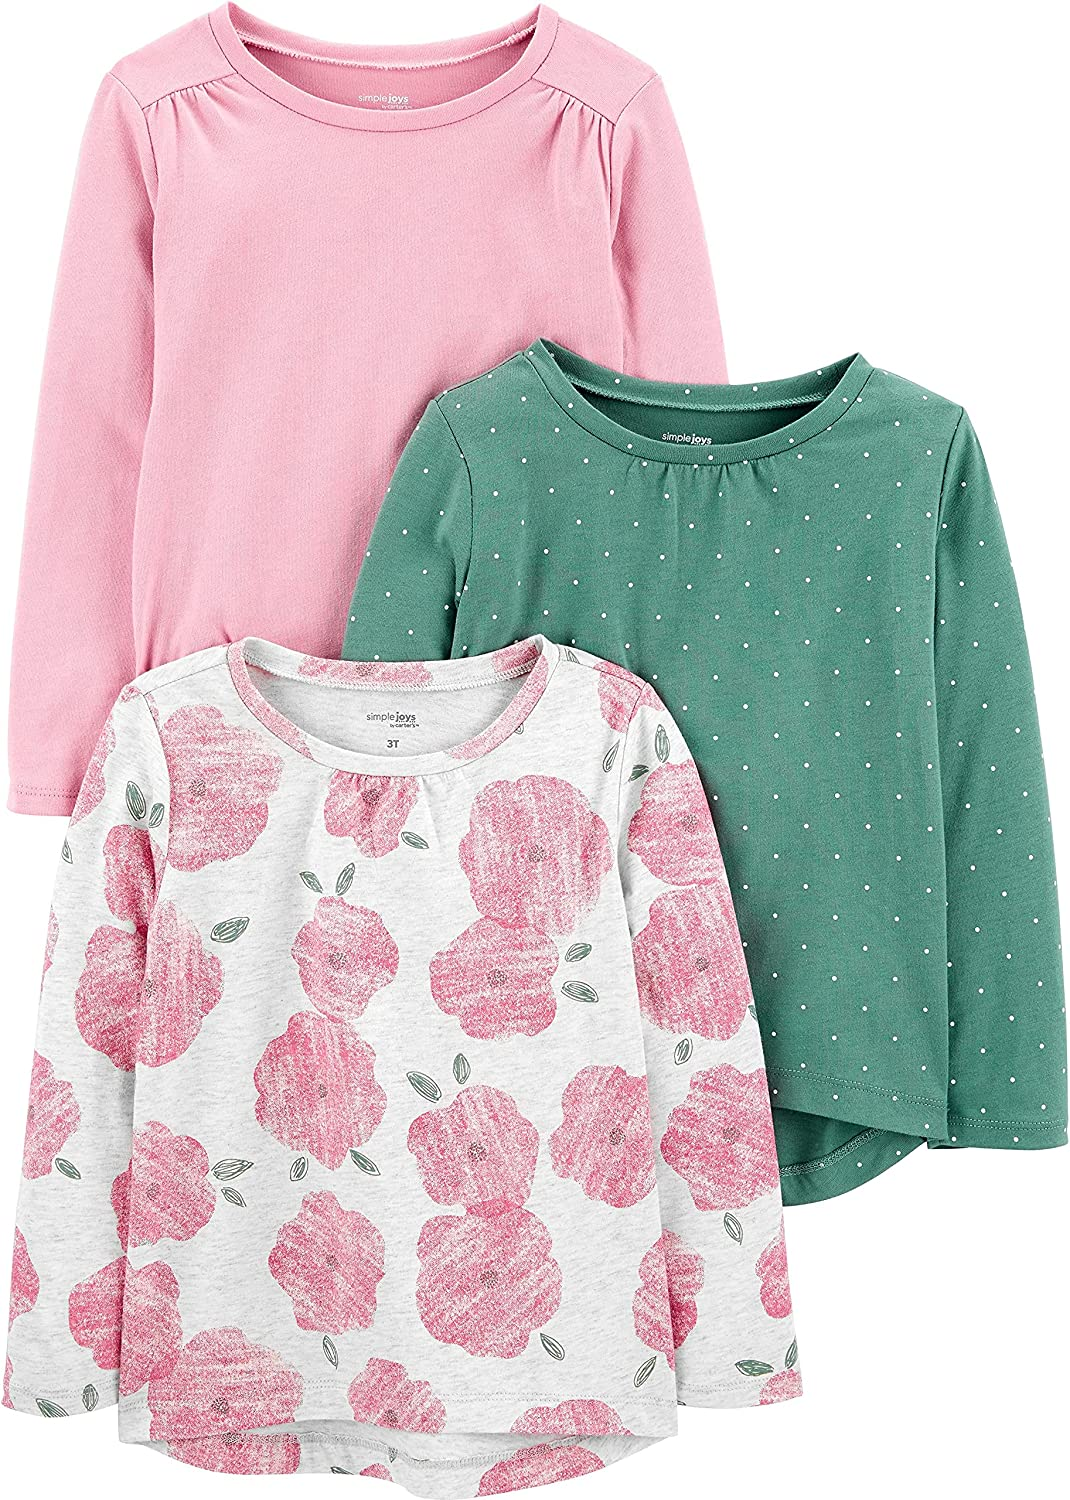 Simple Joys by Carter's Baby and Toddler Girls' 3-Pack Long-Sleeve Tops